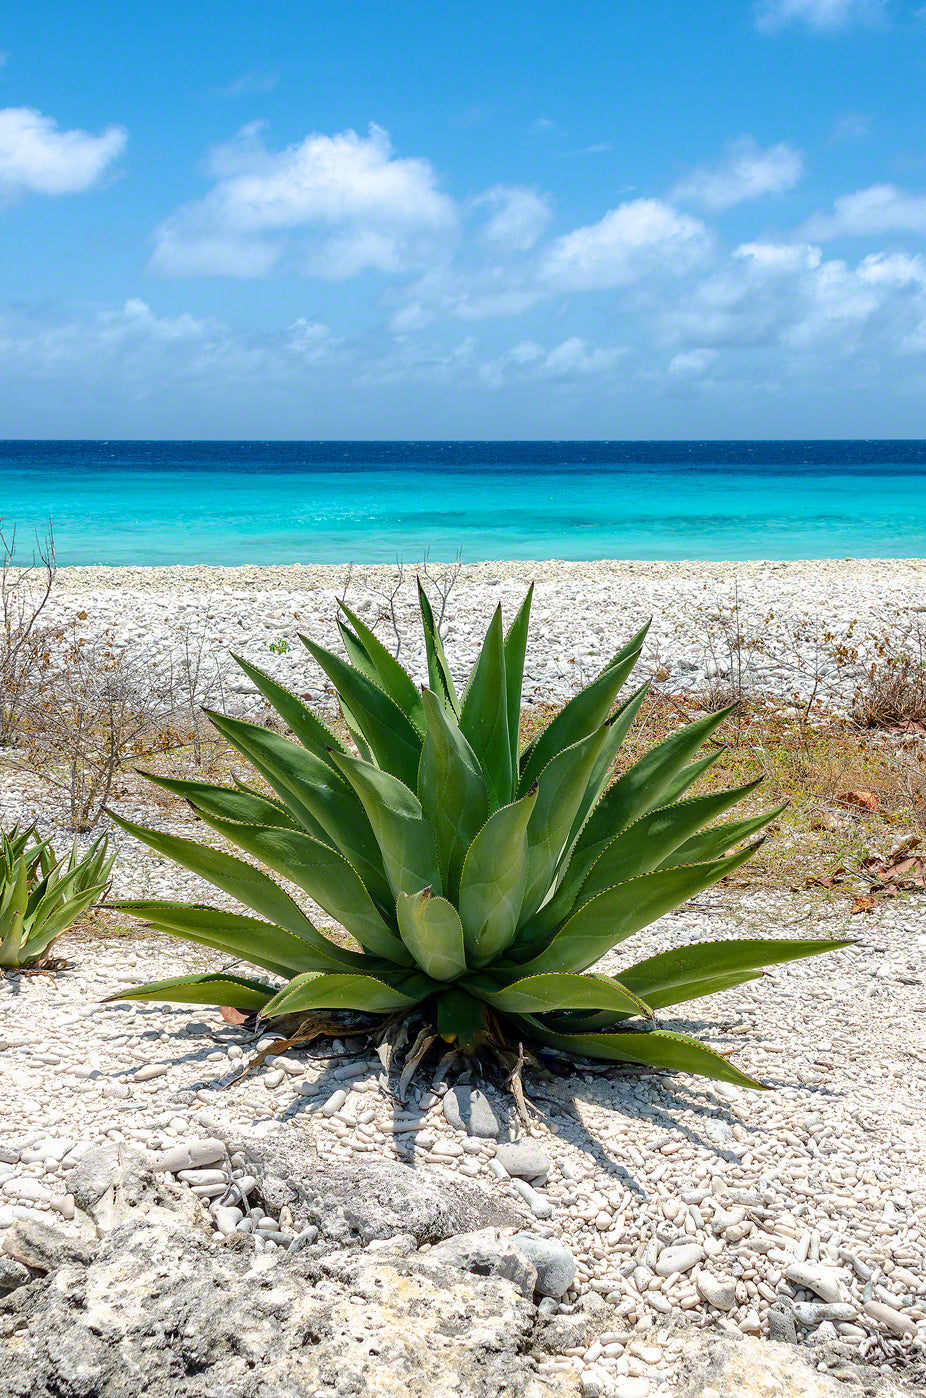 A photo of an Aloe plant by the sea in Bonaire.